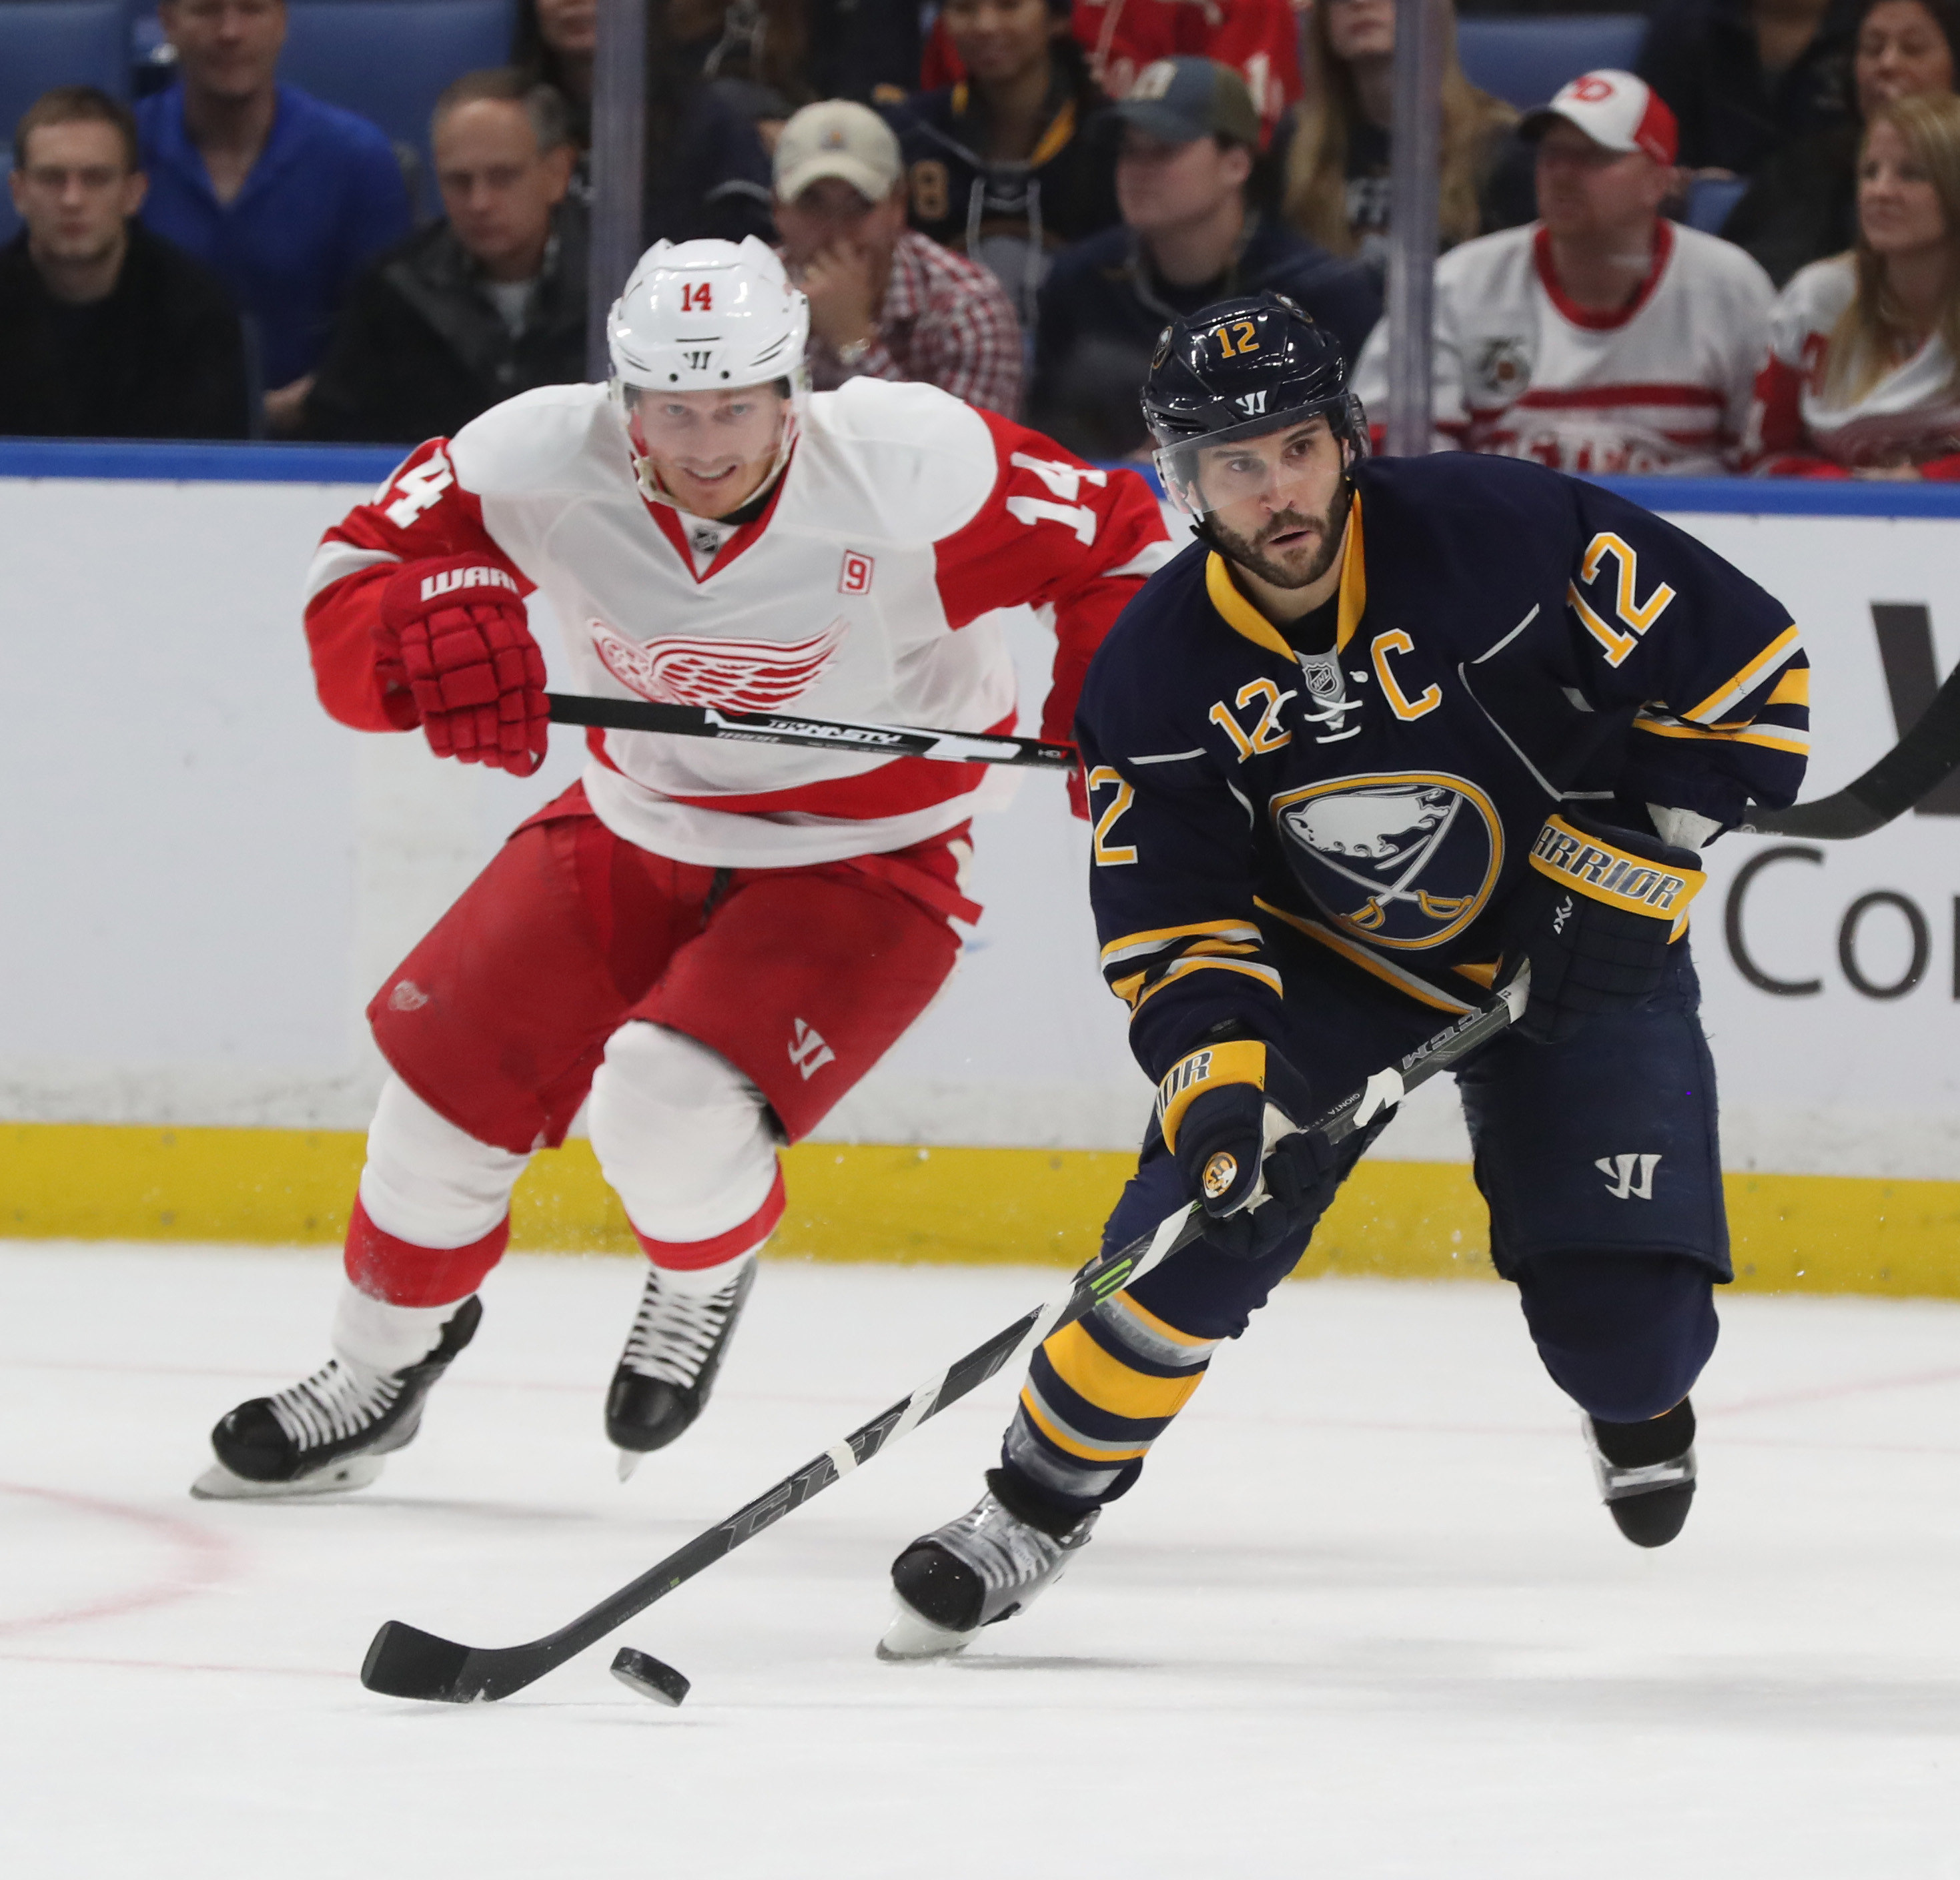 Brian Gionta (12) battles Detroit's Gustav Nyquist (14) for the puck during the first period (James P. McCoy/Buffalo News).